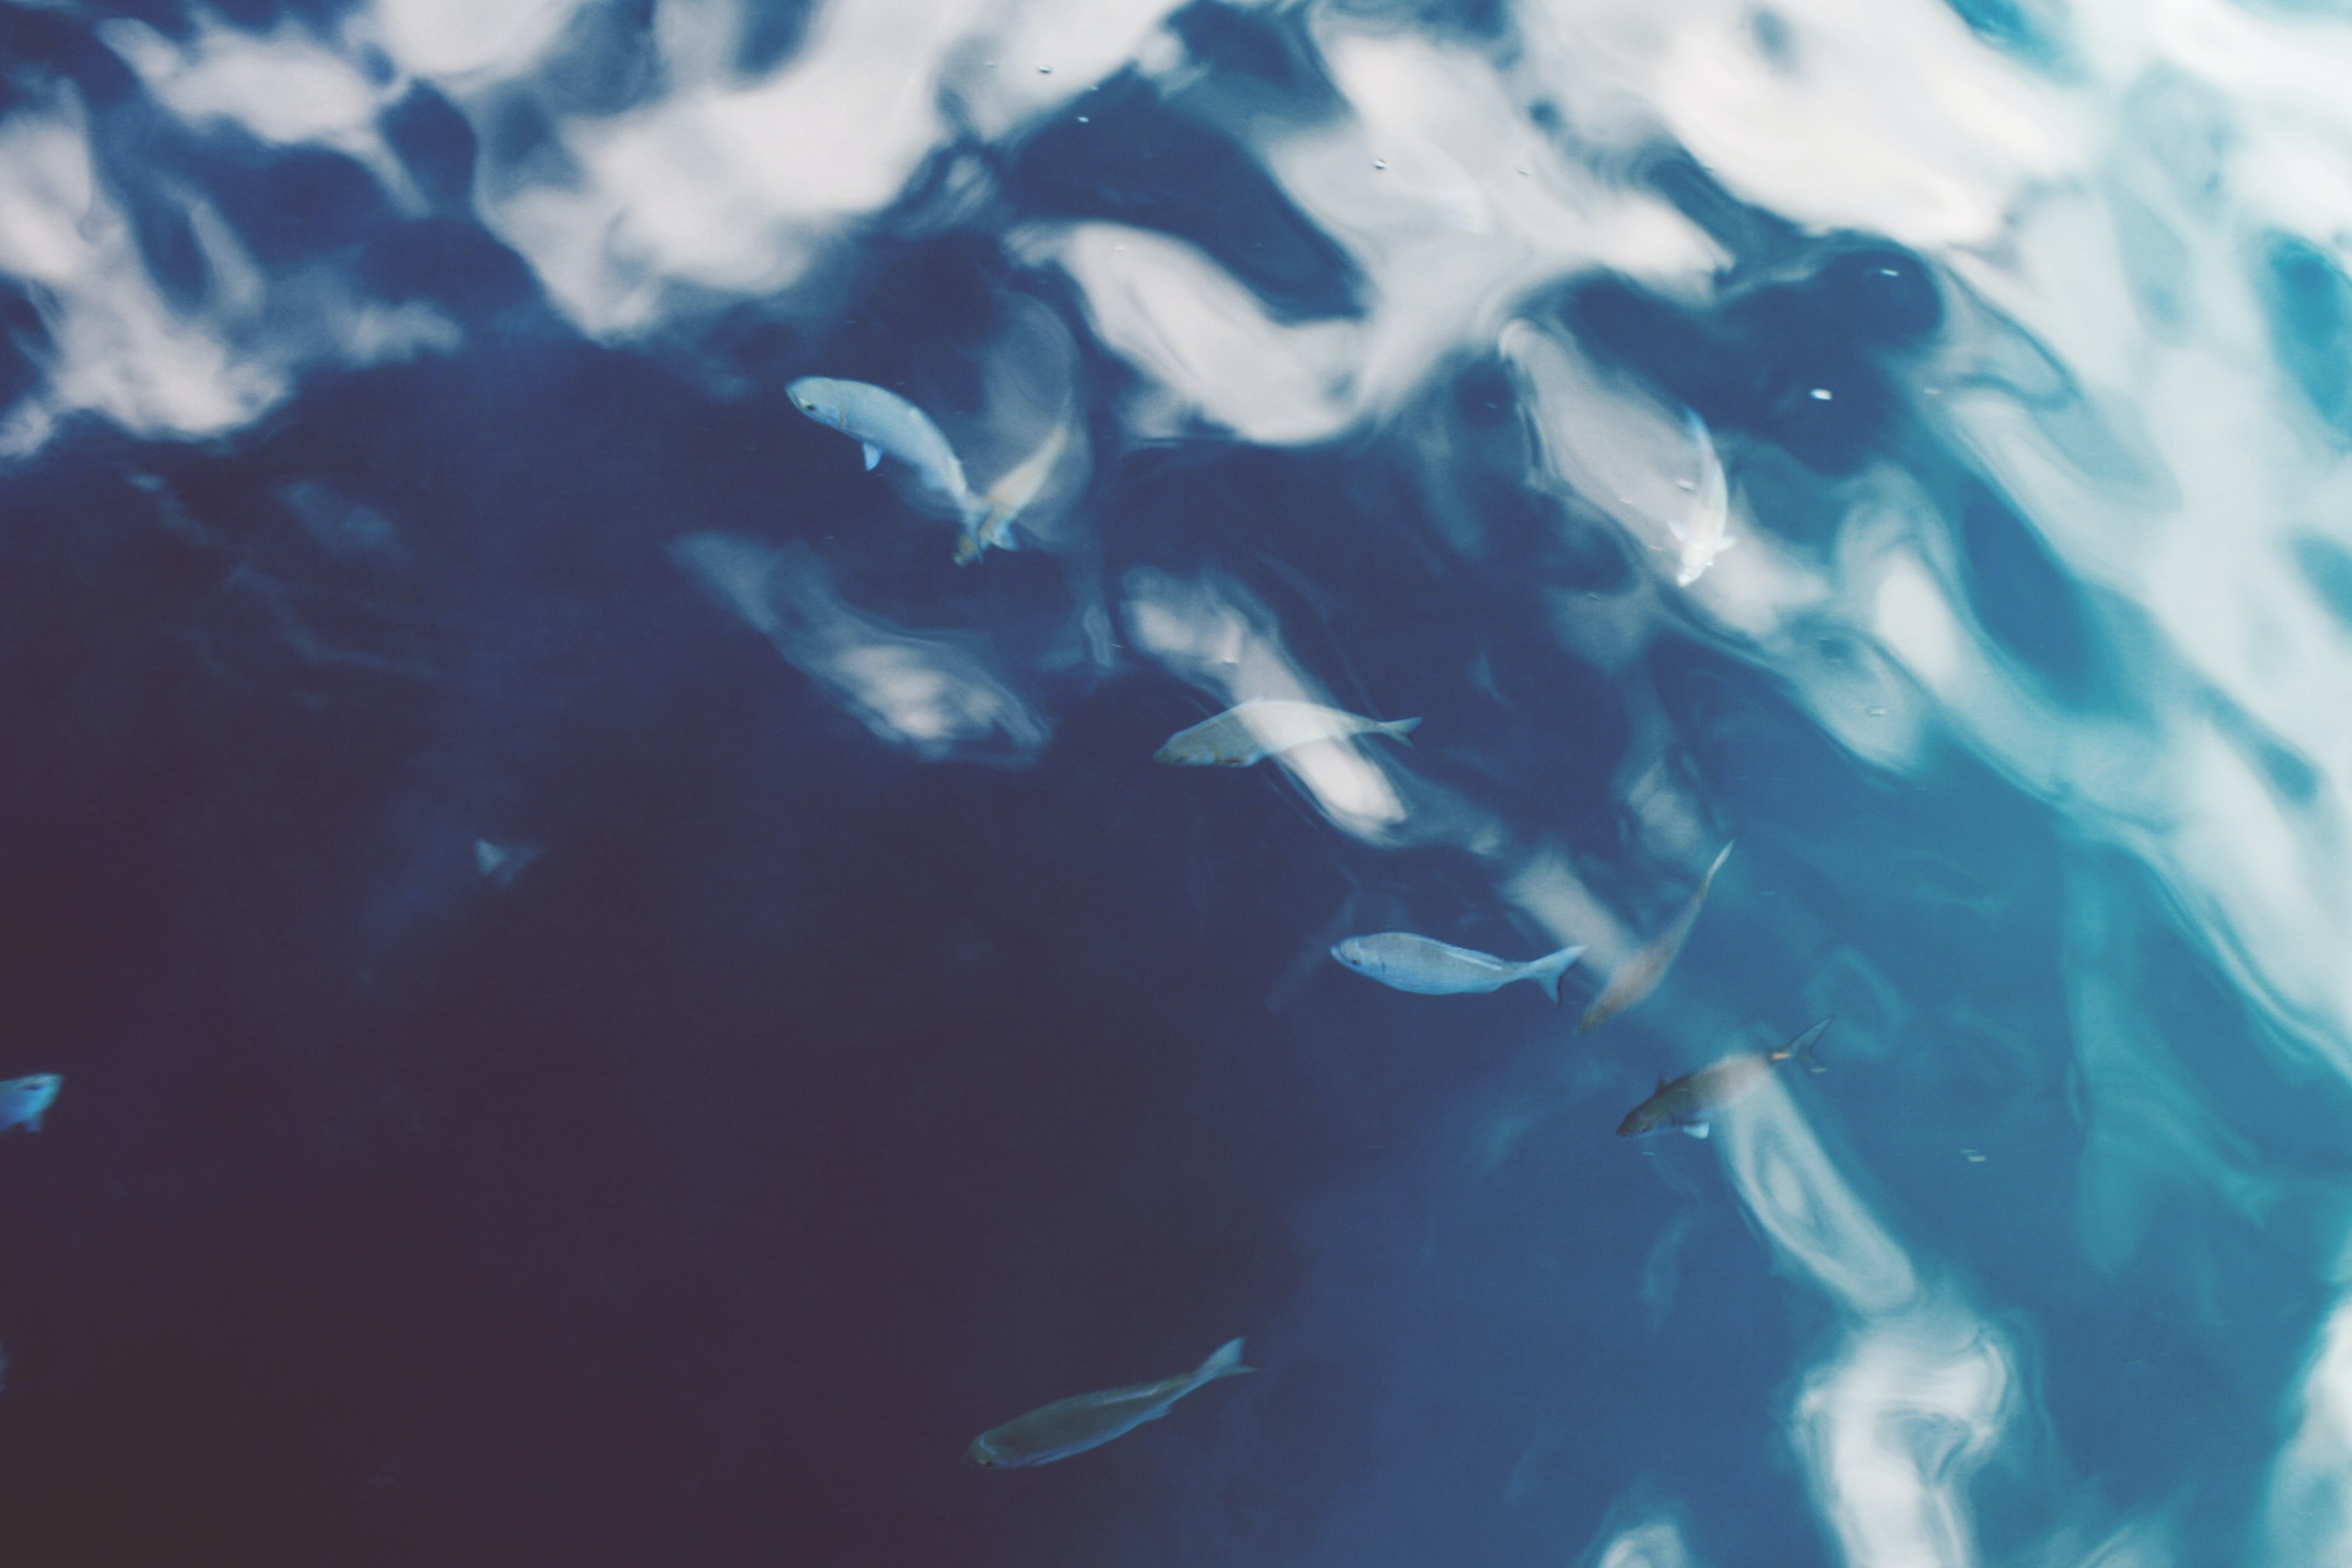 A school of small fish in choppy azure sea water